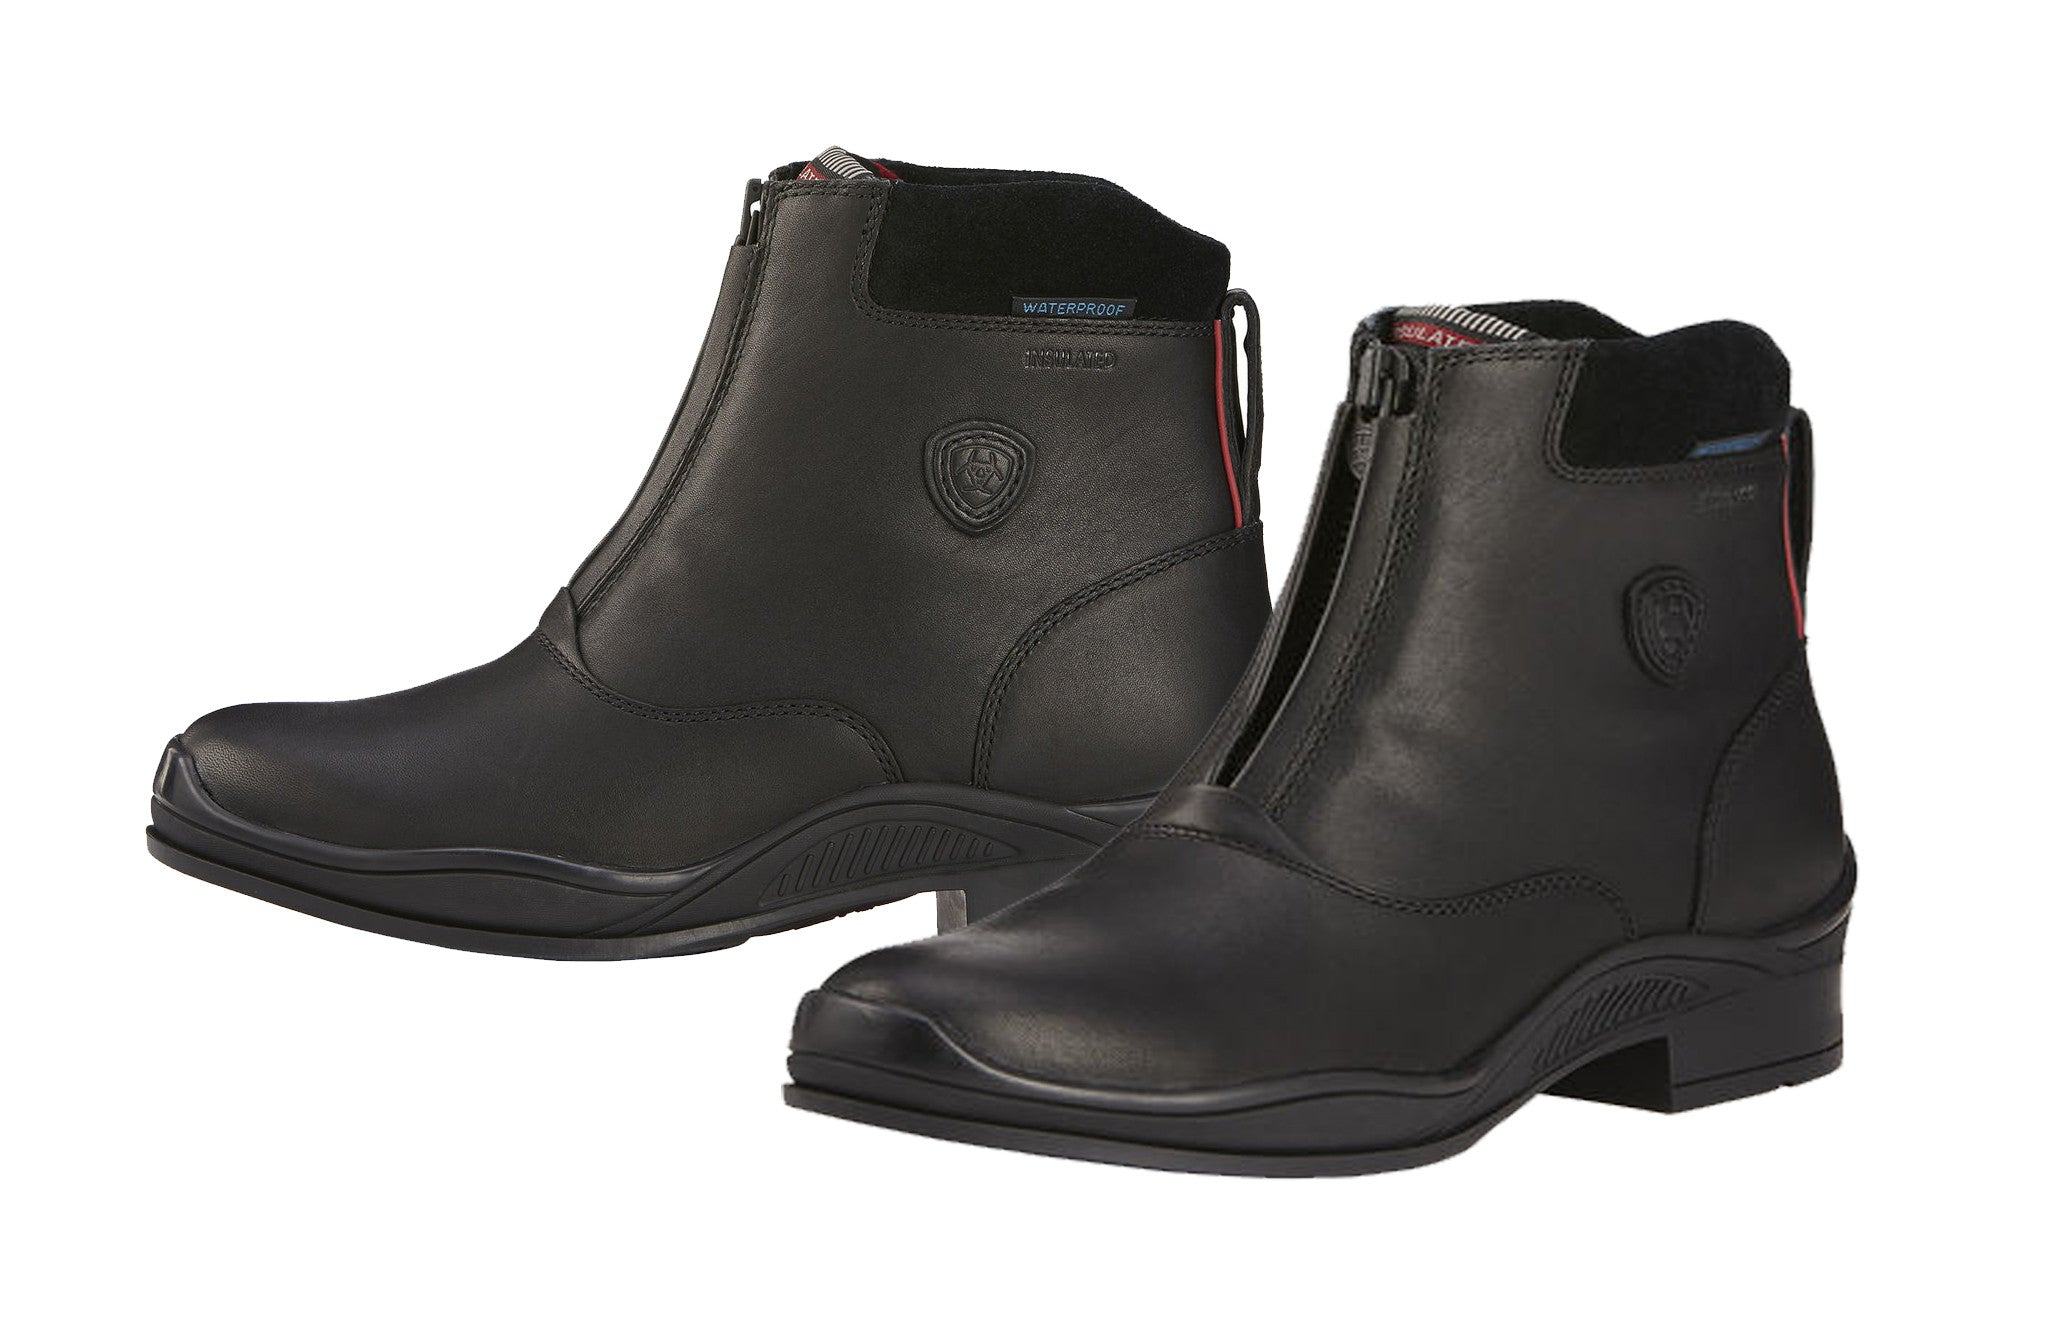 Ariat Extreme H2O Insulated Zip Paddock Boot - North Shore Saddlery